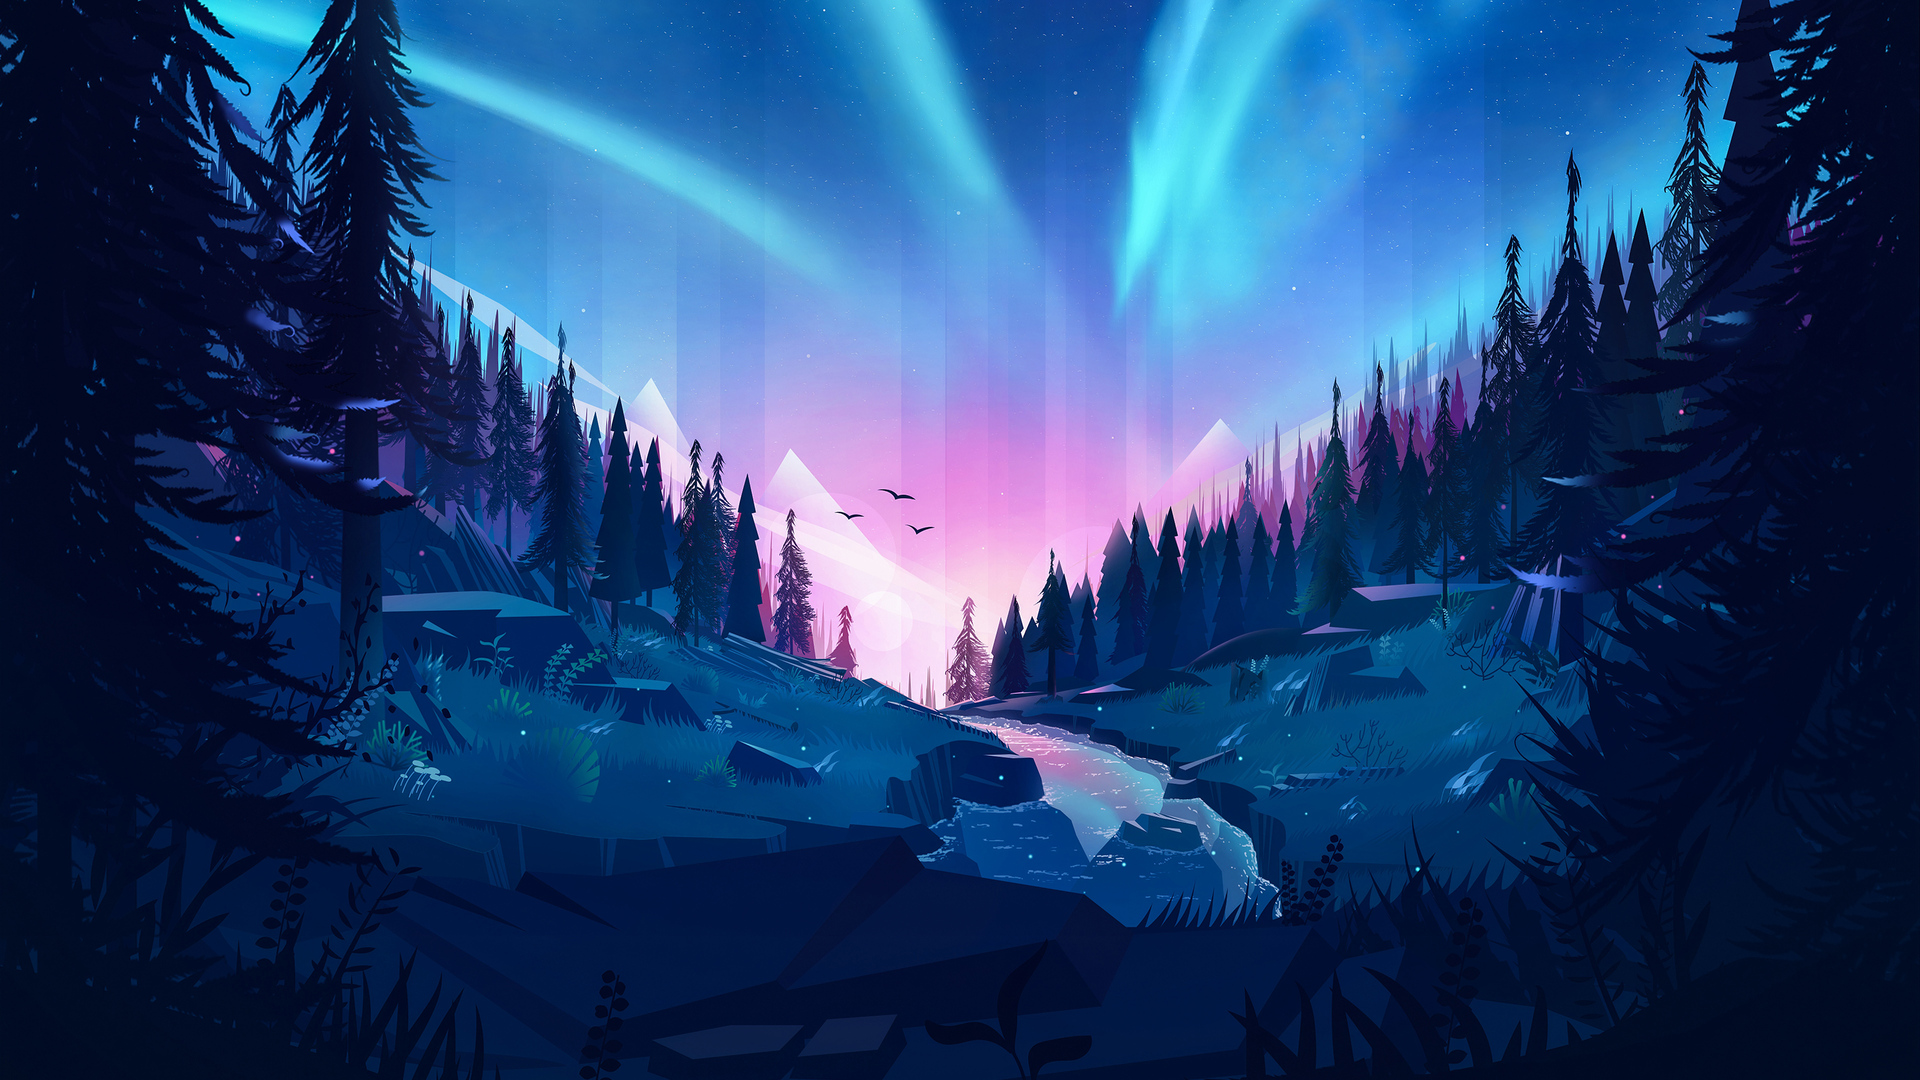 1920x1080 Auroral Forest 4k Illustration Laptop Full Hd